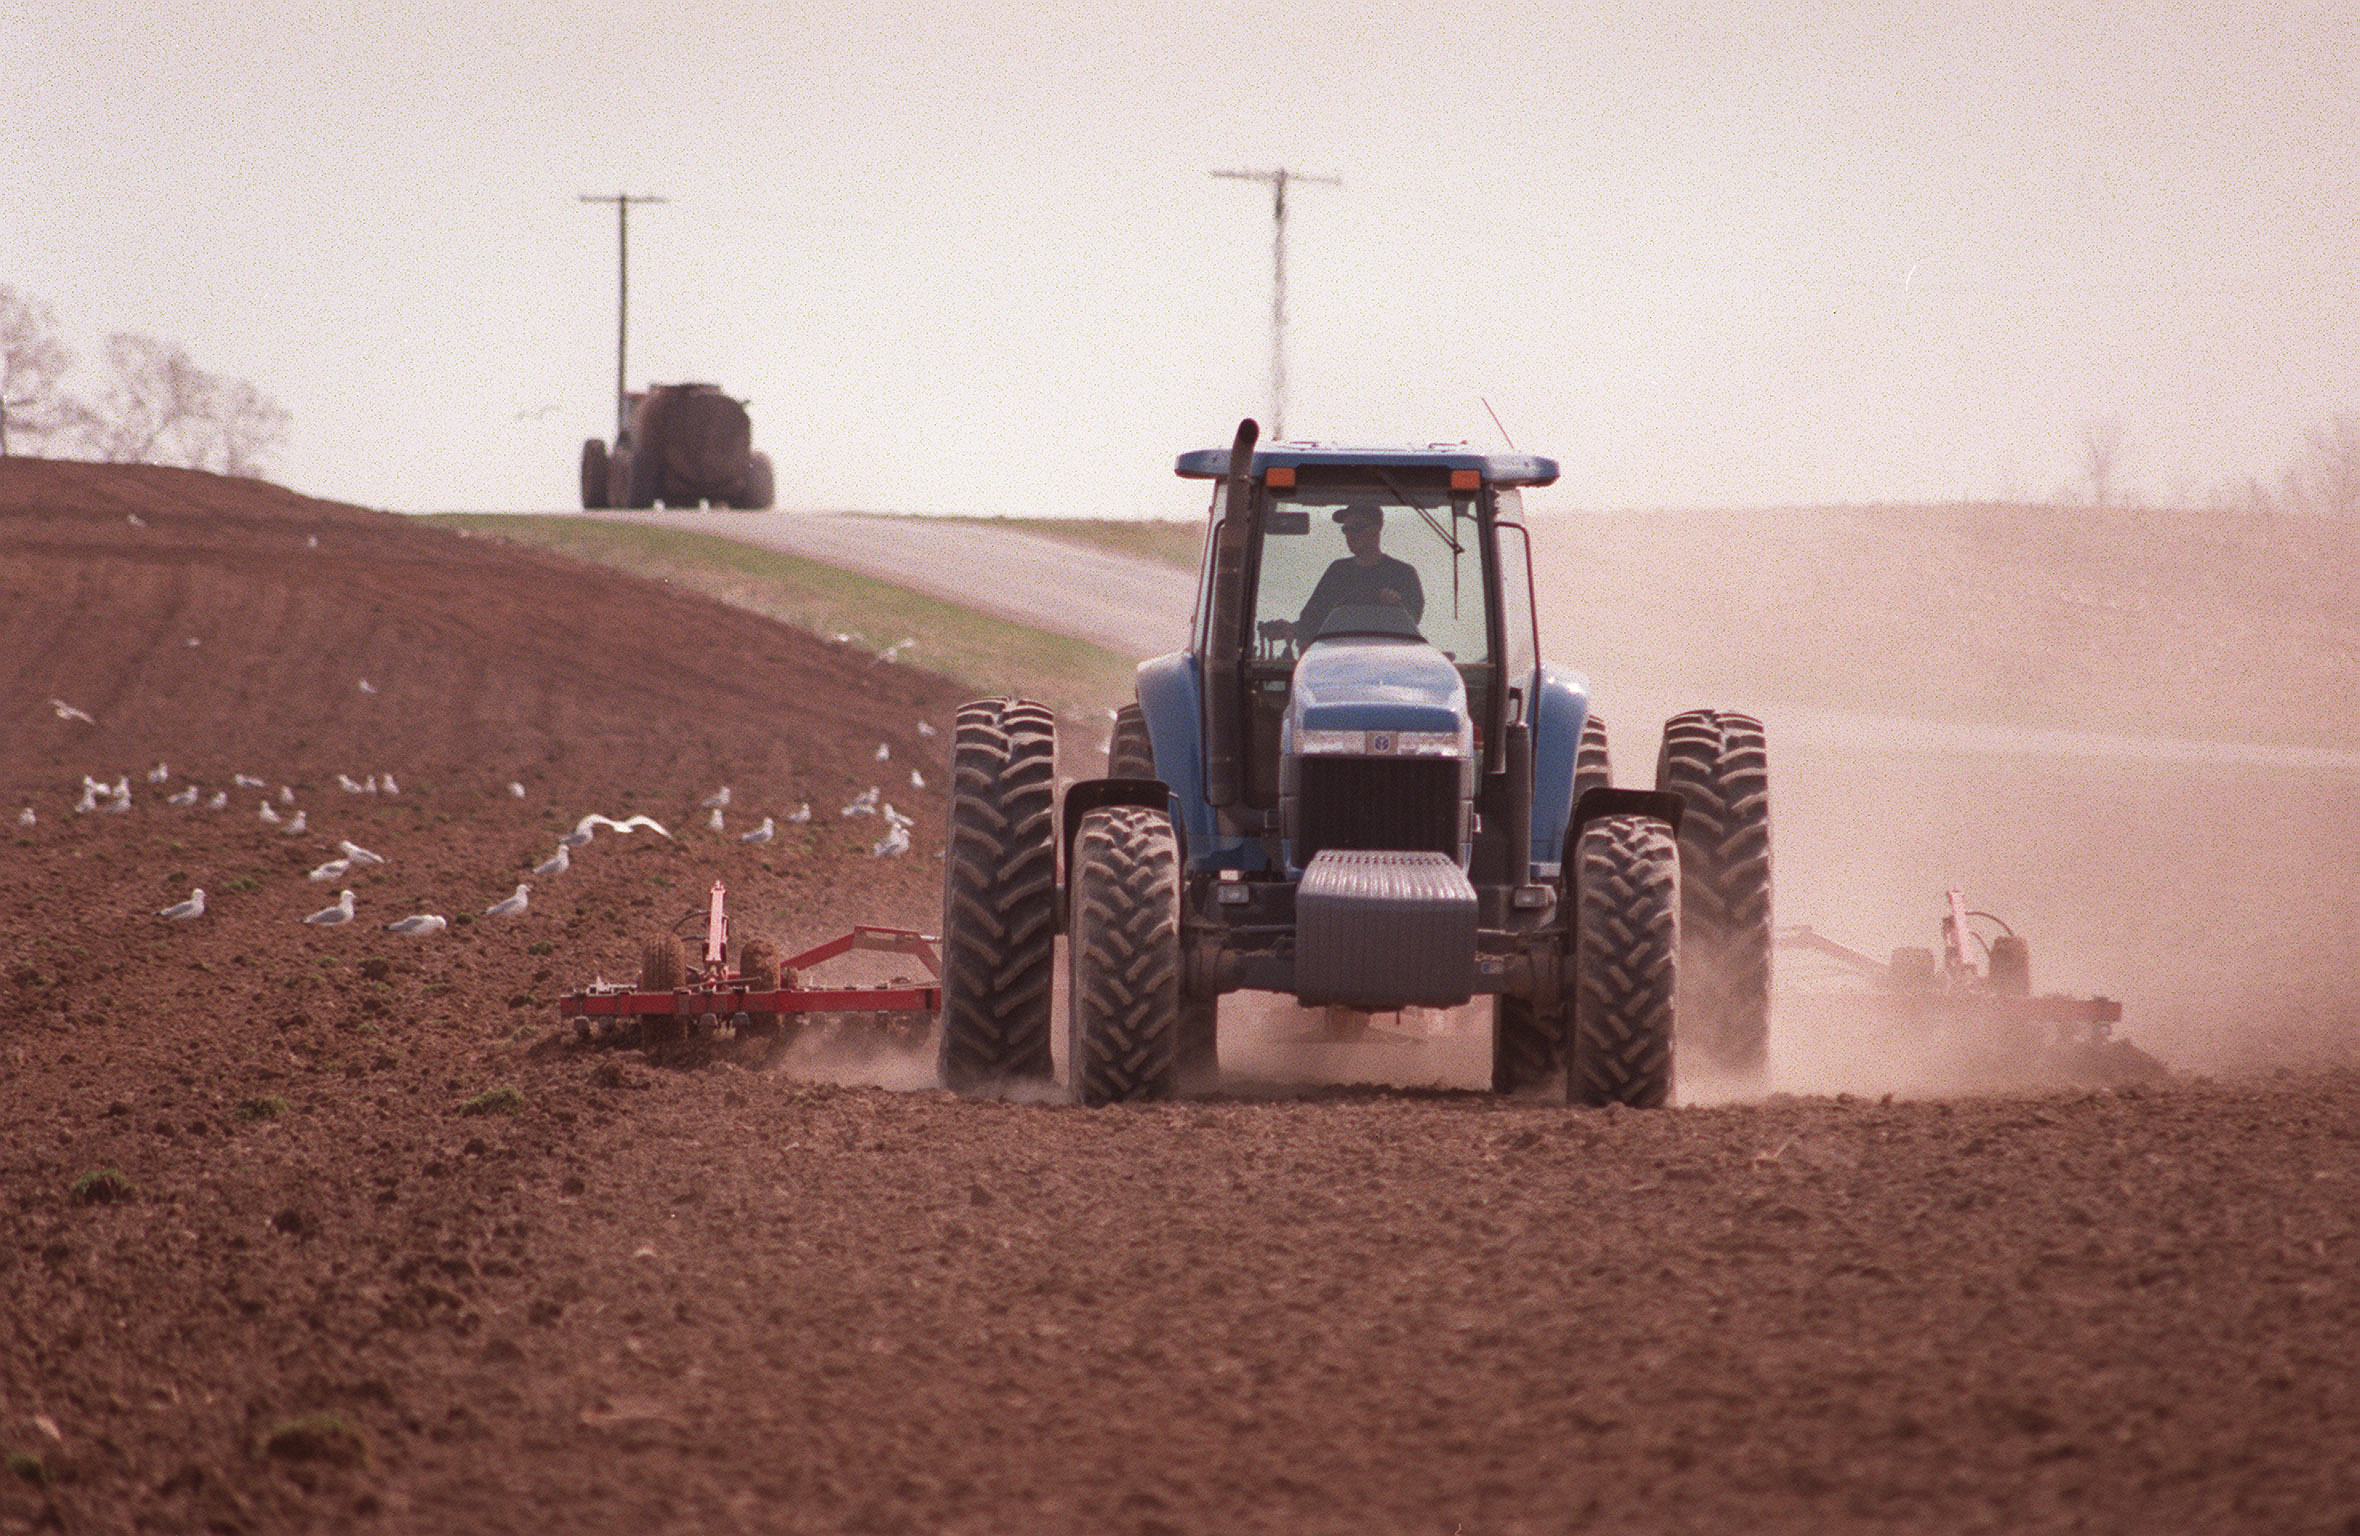 A worker at Torrey Farms cultivates the soil in preparation for planting peas in Elba. (News file photo)